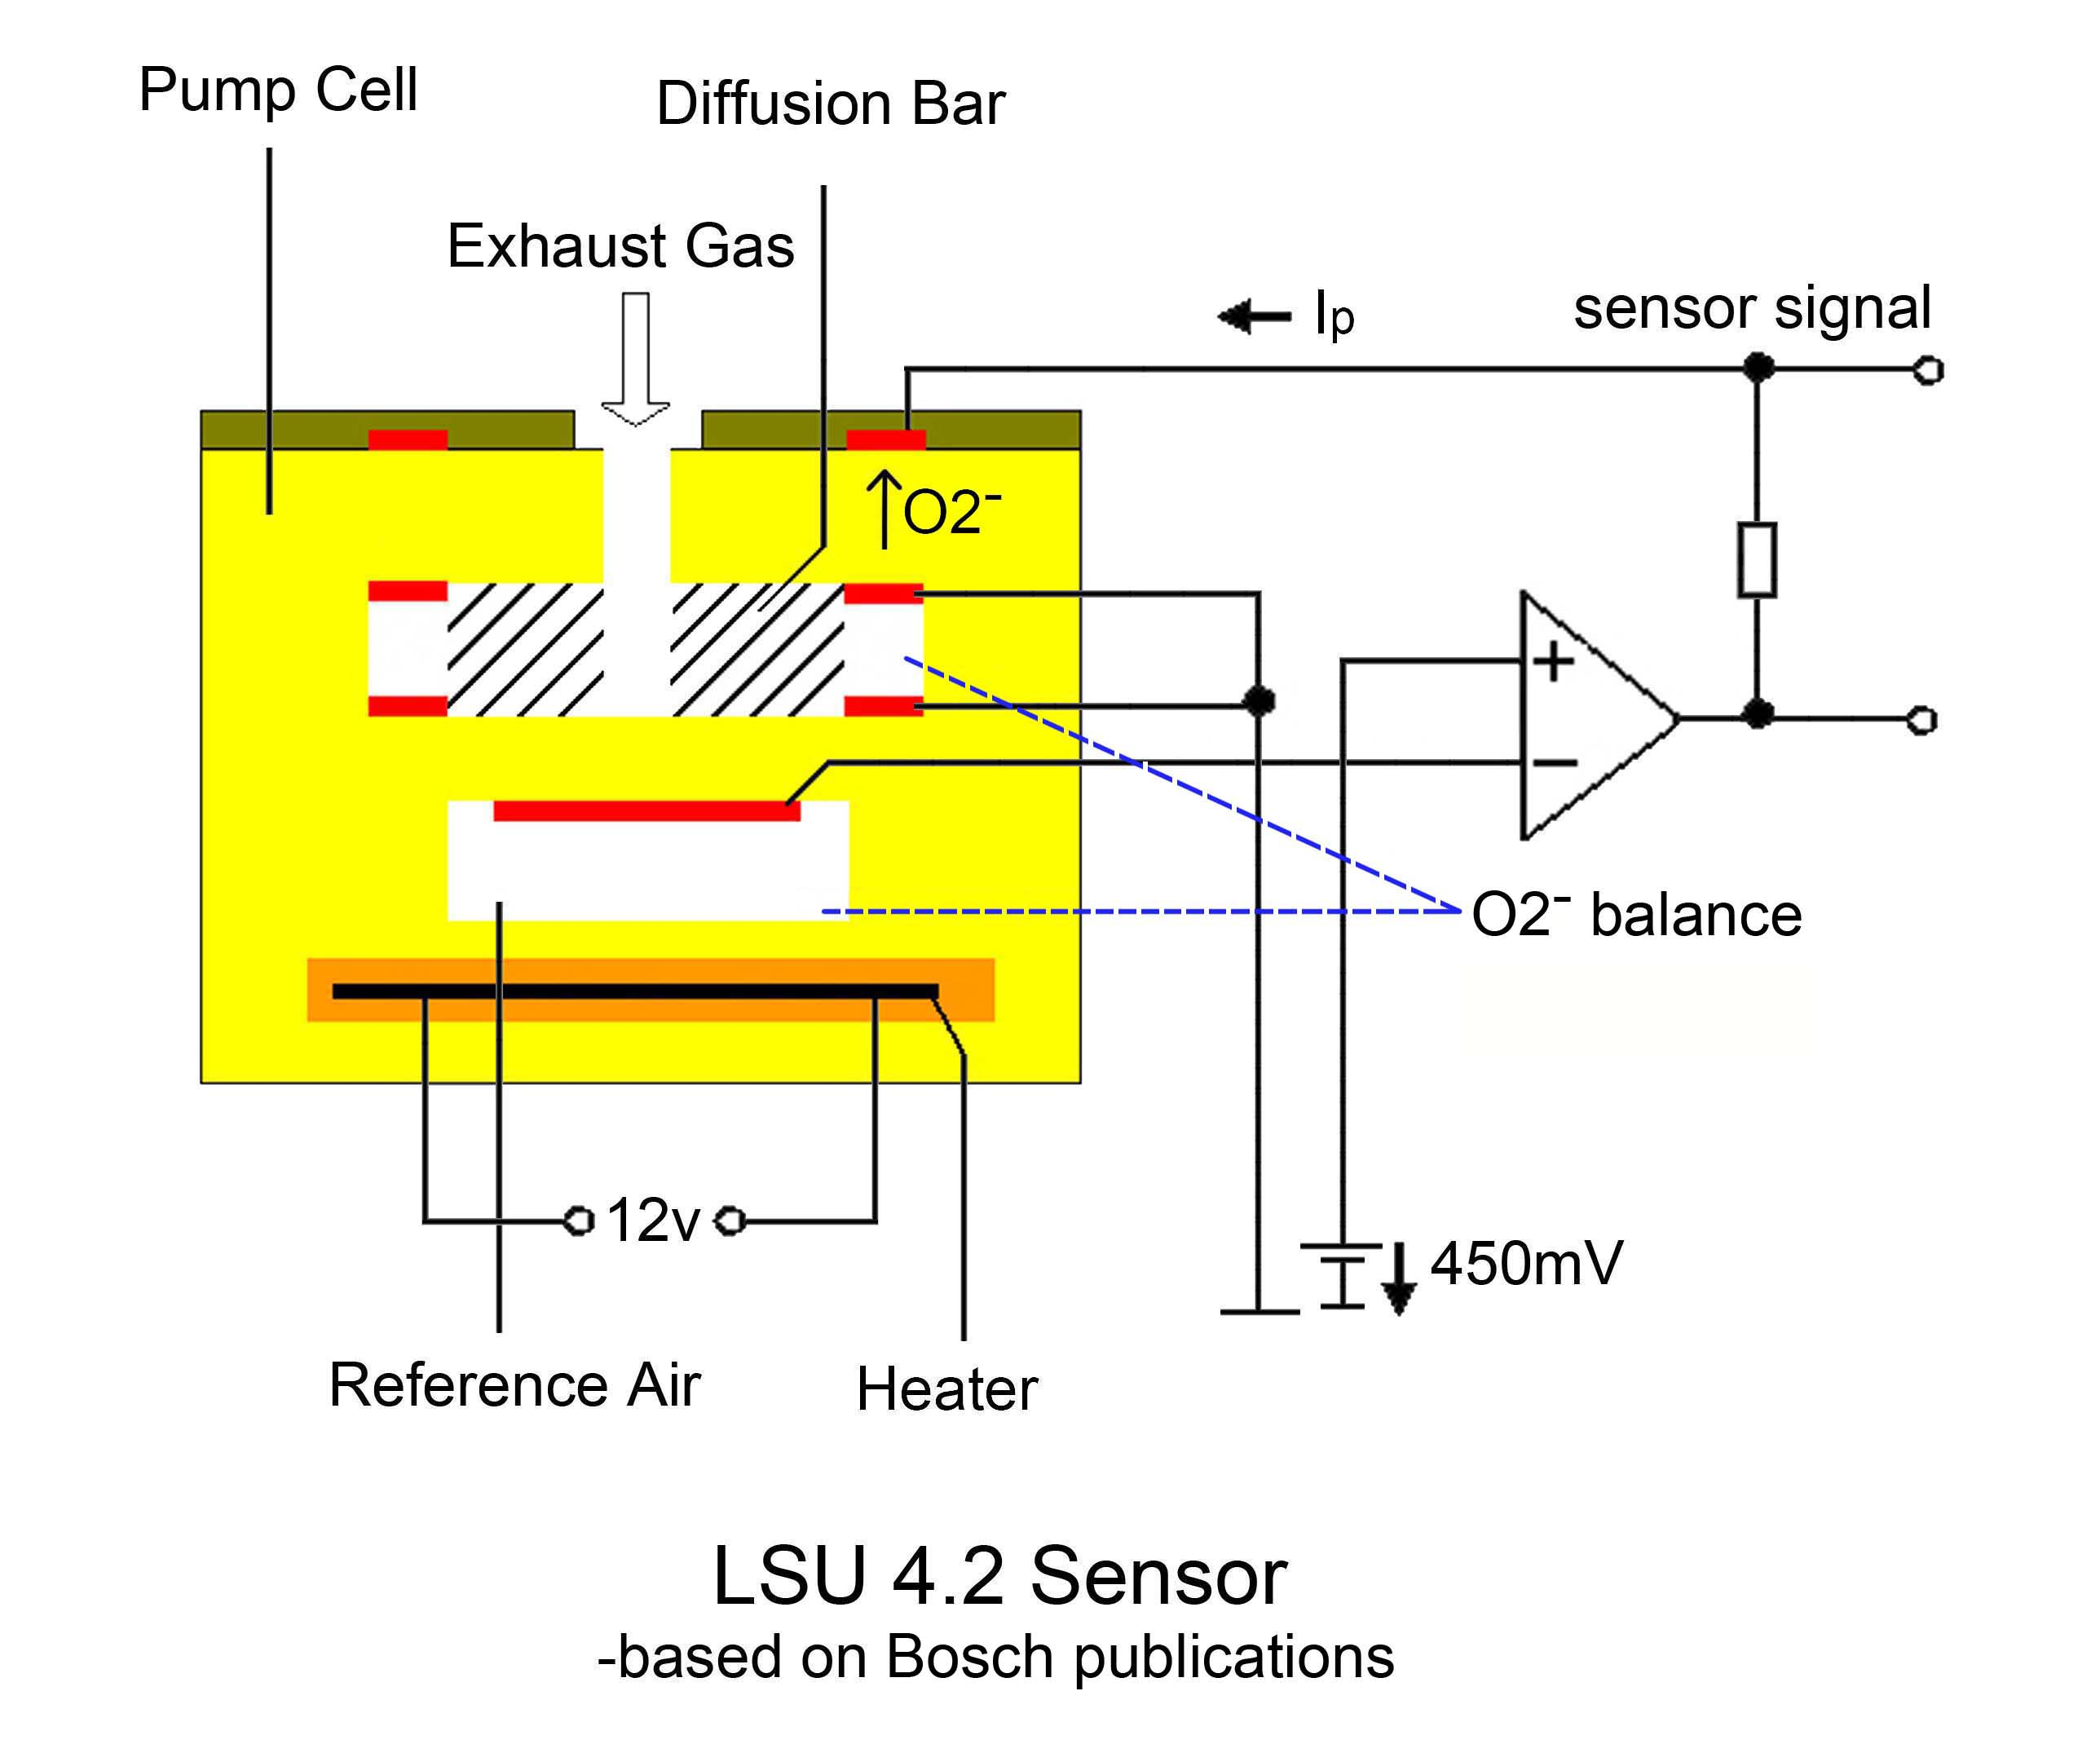 bosch lsu 4 9 is superior to lsu 4 2 sensors